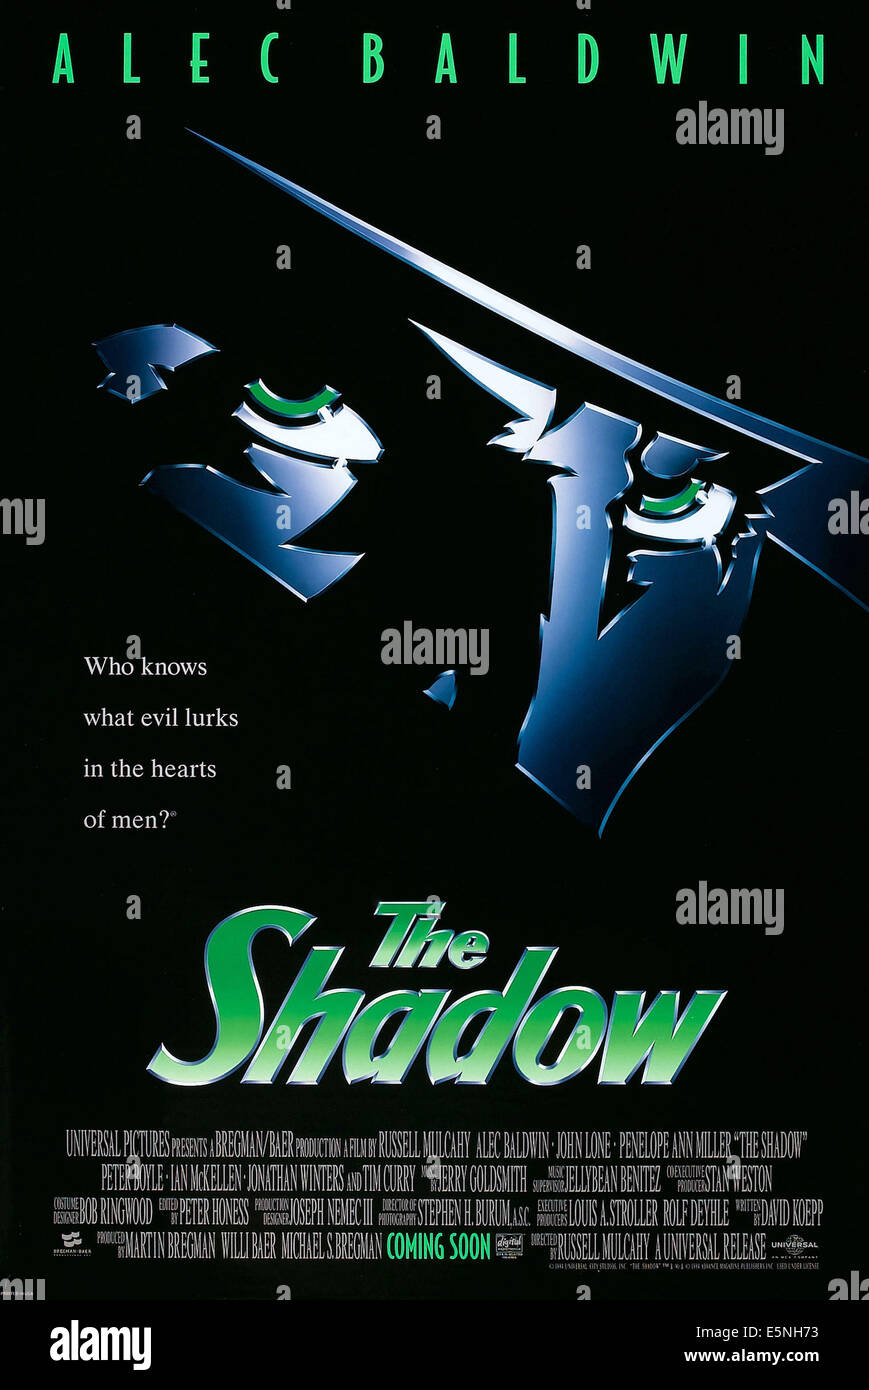 THE SHADOW, US advance poster art, 1994, © Universal/courtesy Everett Collection - Stock Image